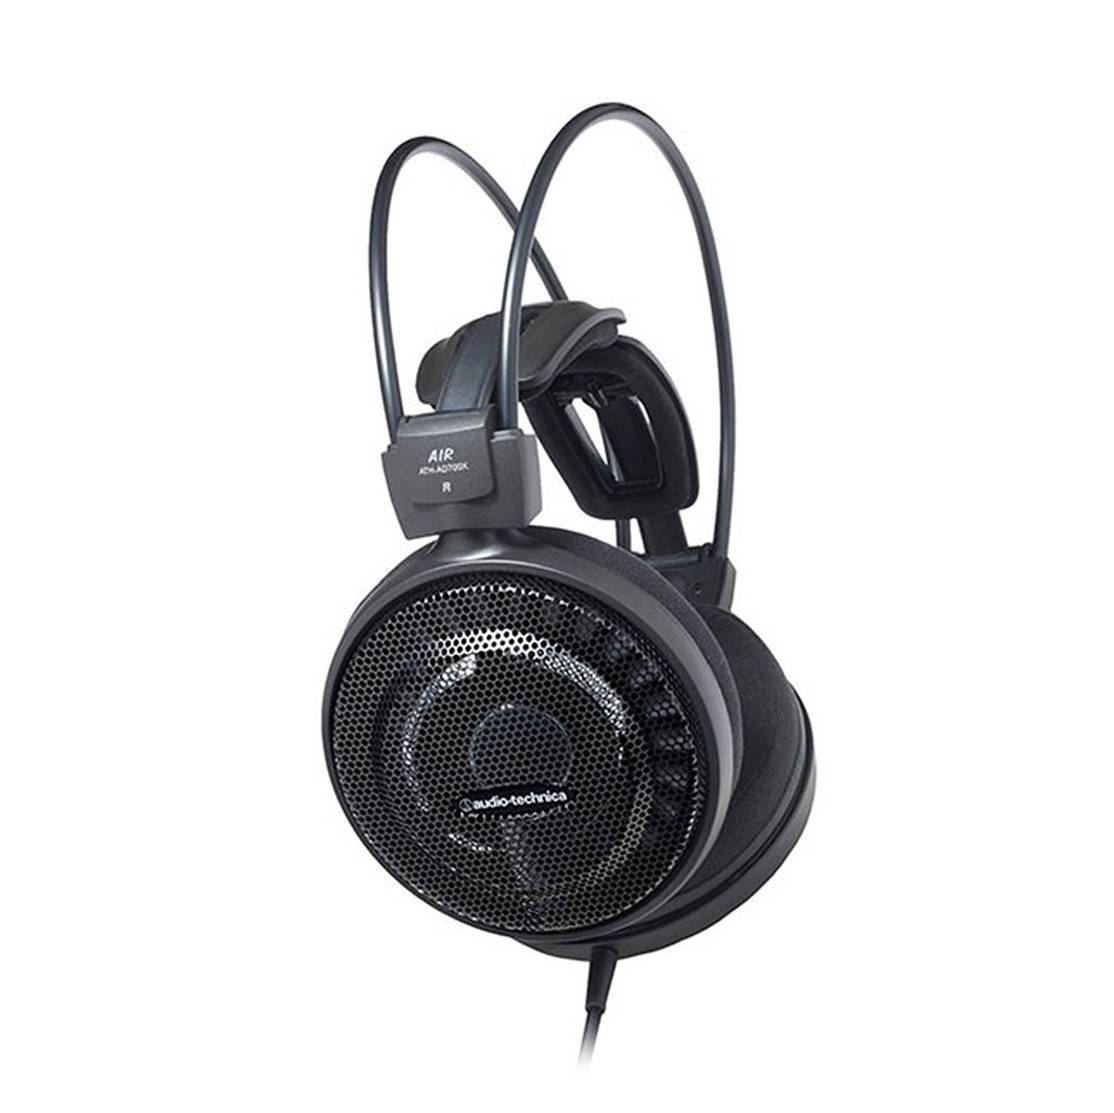 Audio-Technica ATH-AD700X Open Back Headphones